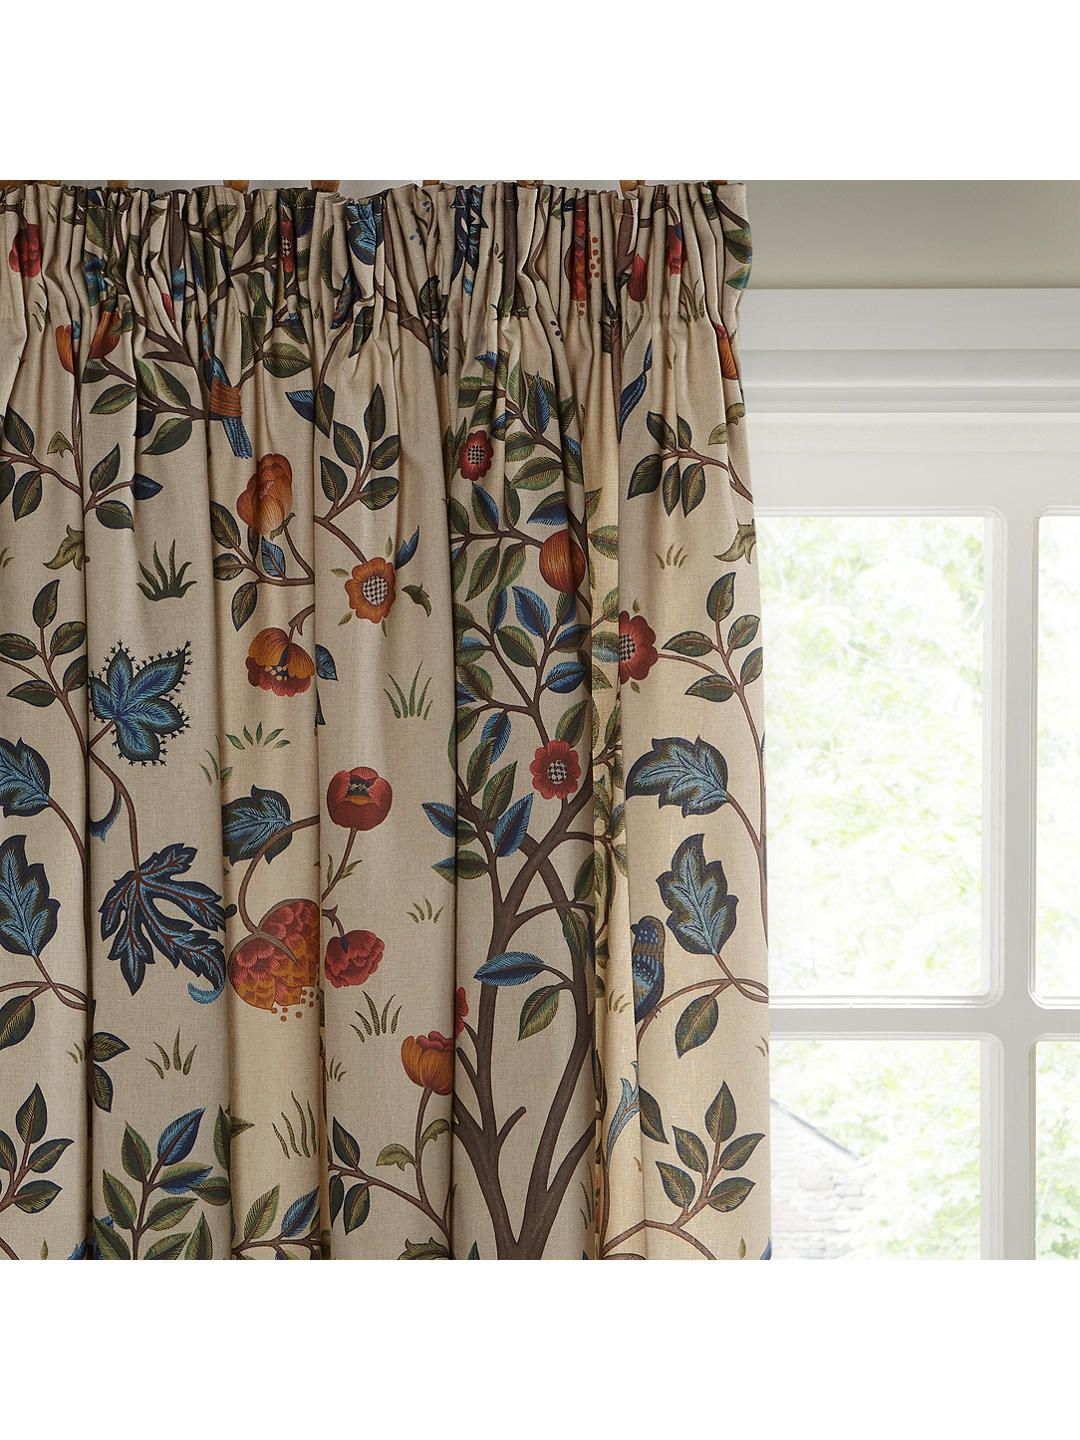 8e73db3bc1d1 Kelmscott Tree Pair Lined Pencil Pleat Curtains, Multi, W167 x Drop 182cm  Online at johnlewis.com